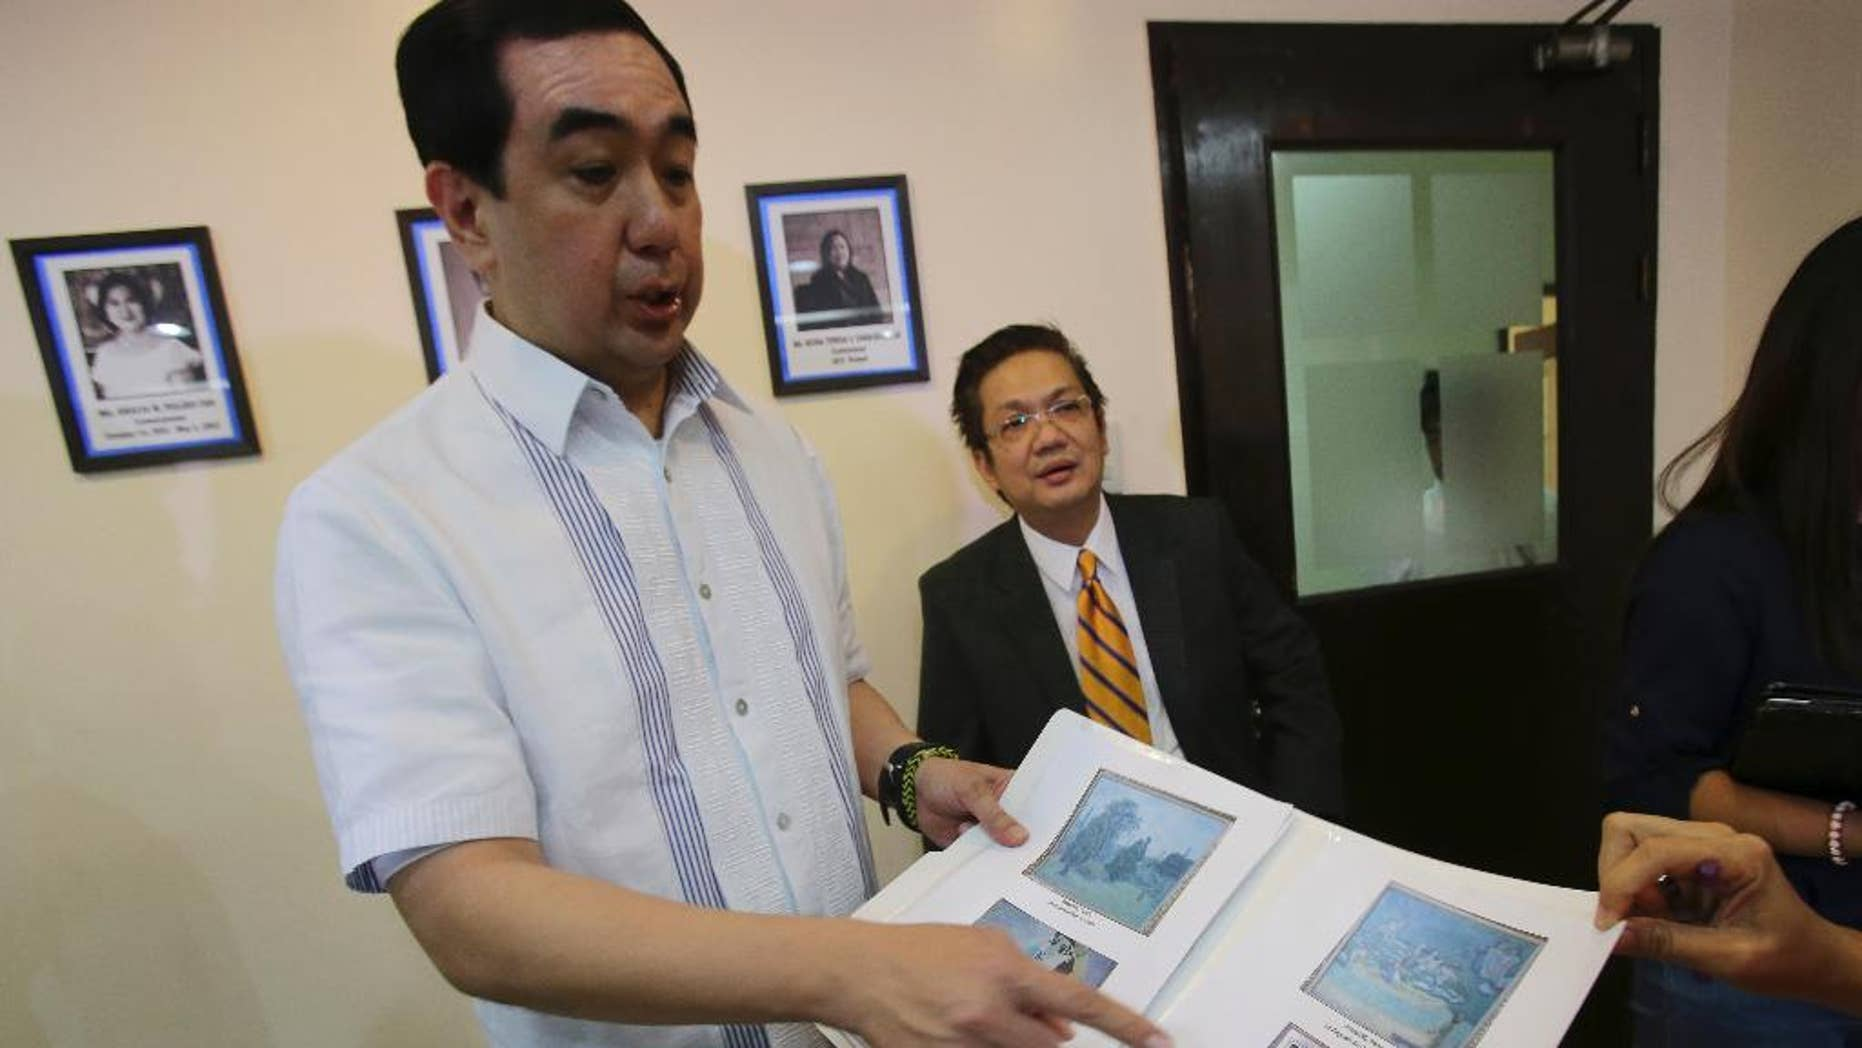 Andres Bautista, head of the Presidential Commission on Good Government, shows reporters some of the rare paintings of European masters that are allegedly part of the collection of the late dictator Ferdinand Marcos as he meets the press in suburban Mandaluyong city, east of Manila, Philippines on Wednesday, Oct. 1, 2014. Bautista says the Philippine government has seized at least 15 paintings from the former home of the Marcos, part of efforts to recover 156 artworks included in his alleged ill-gotten wealth. (AP Photo/Aaron Favila)